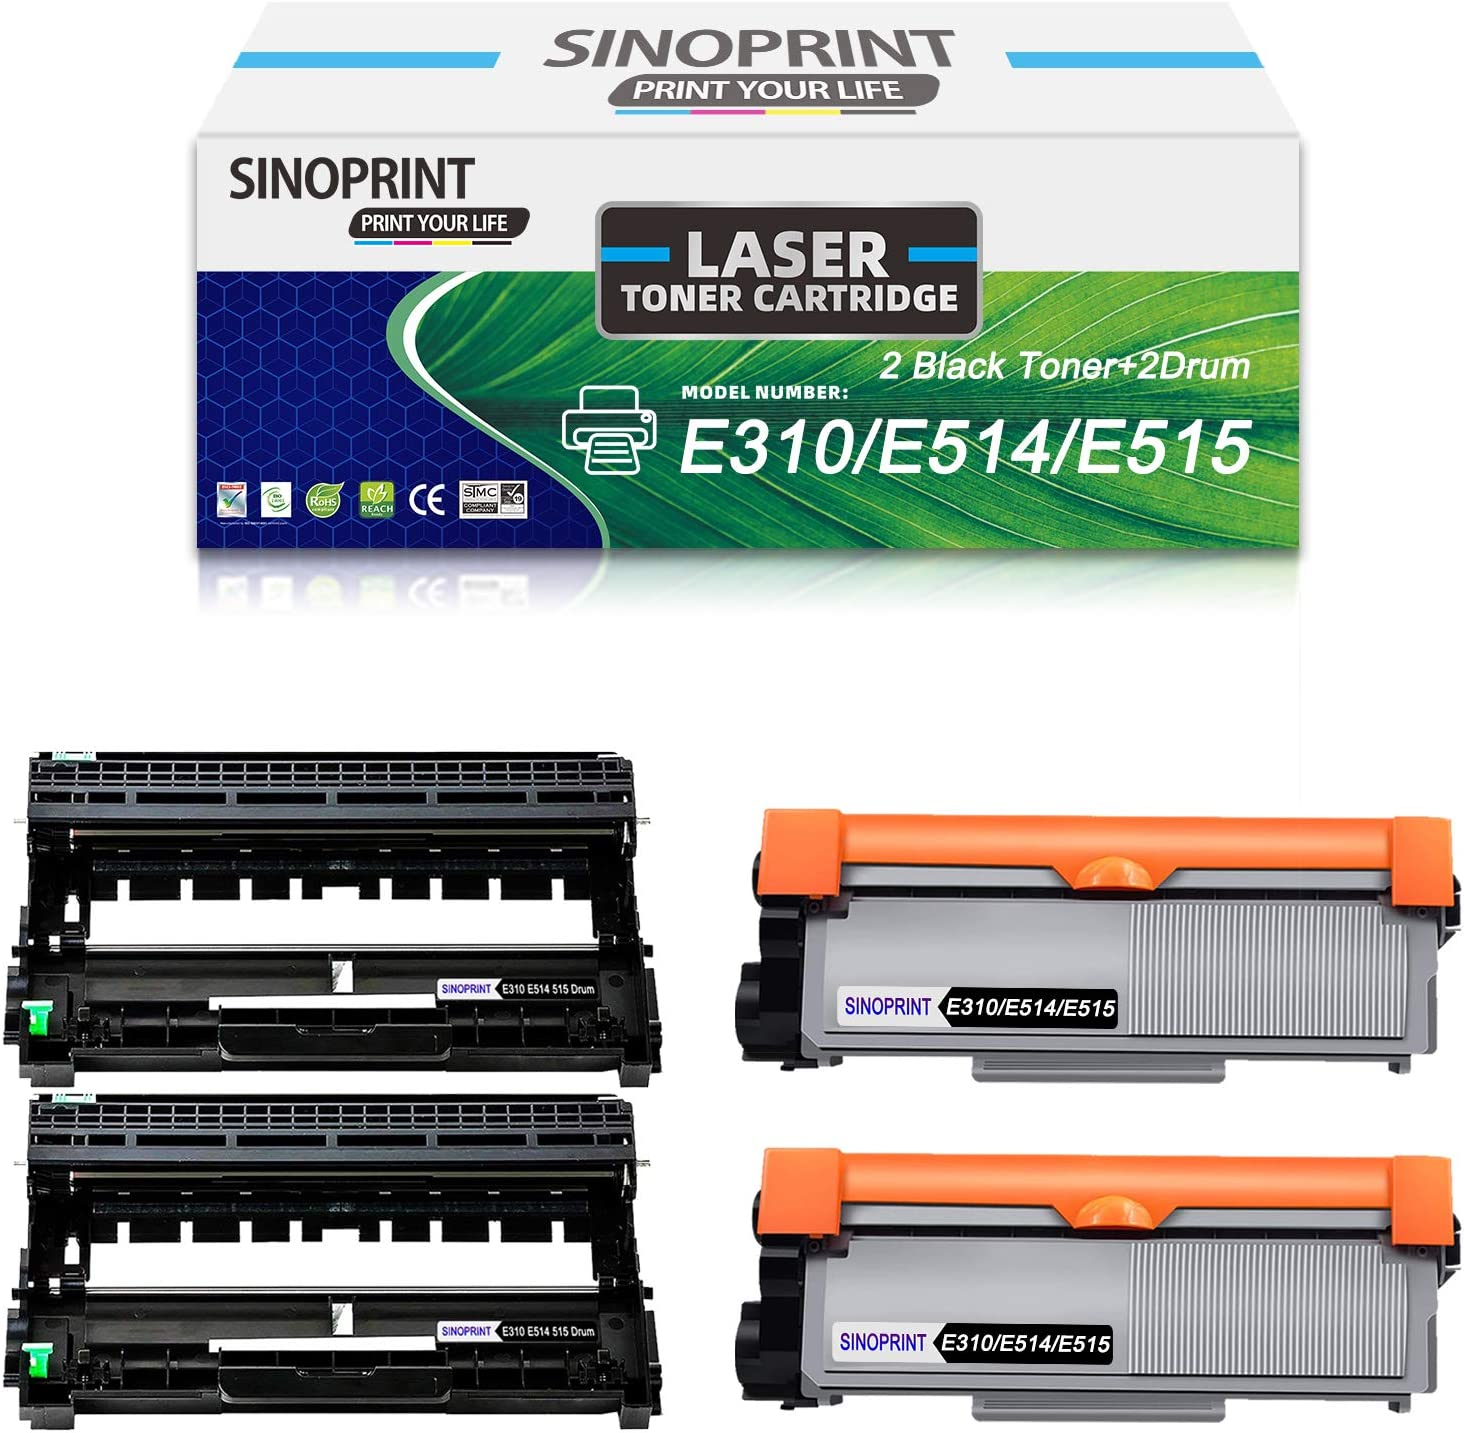 SINOPRINT Compatible Drum Unit & Toner Cartridge Replacement for Dell E310dw E514dw E515dw E5151dn, 2 Drum Unit 2 Black Toner Cartridge